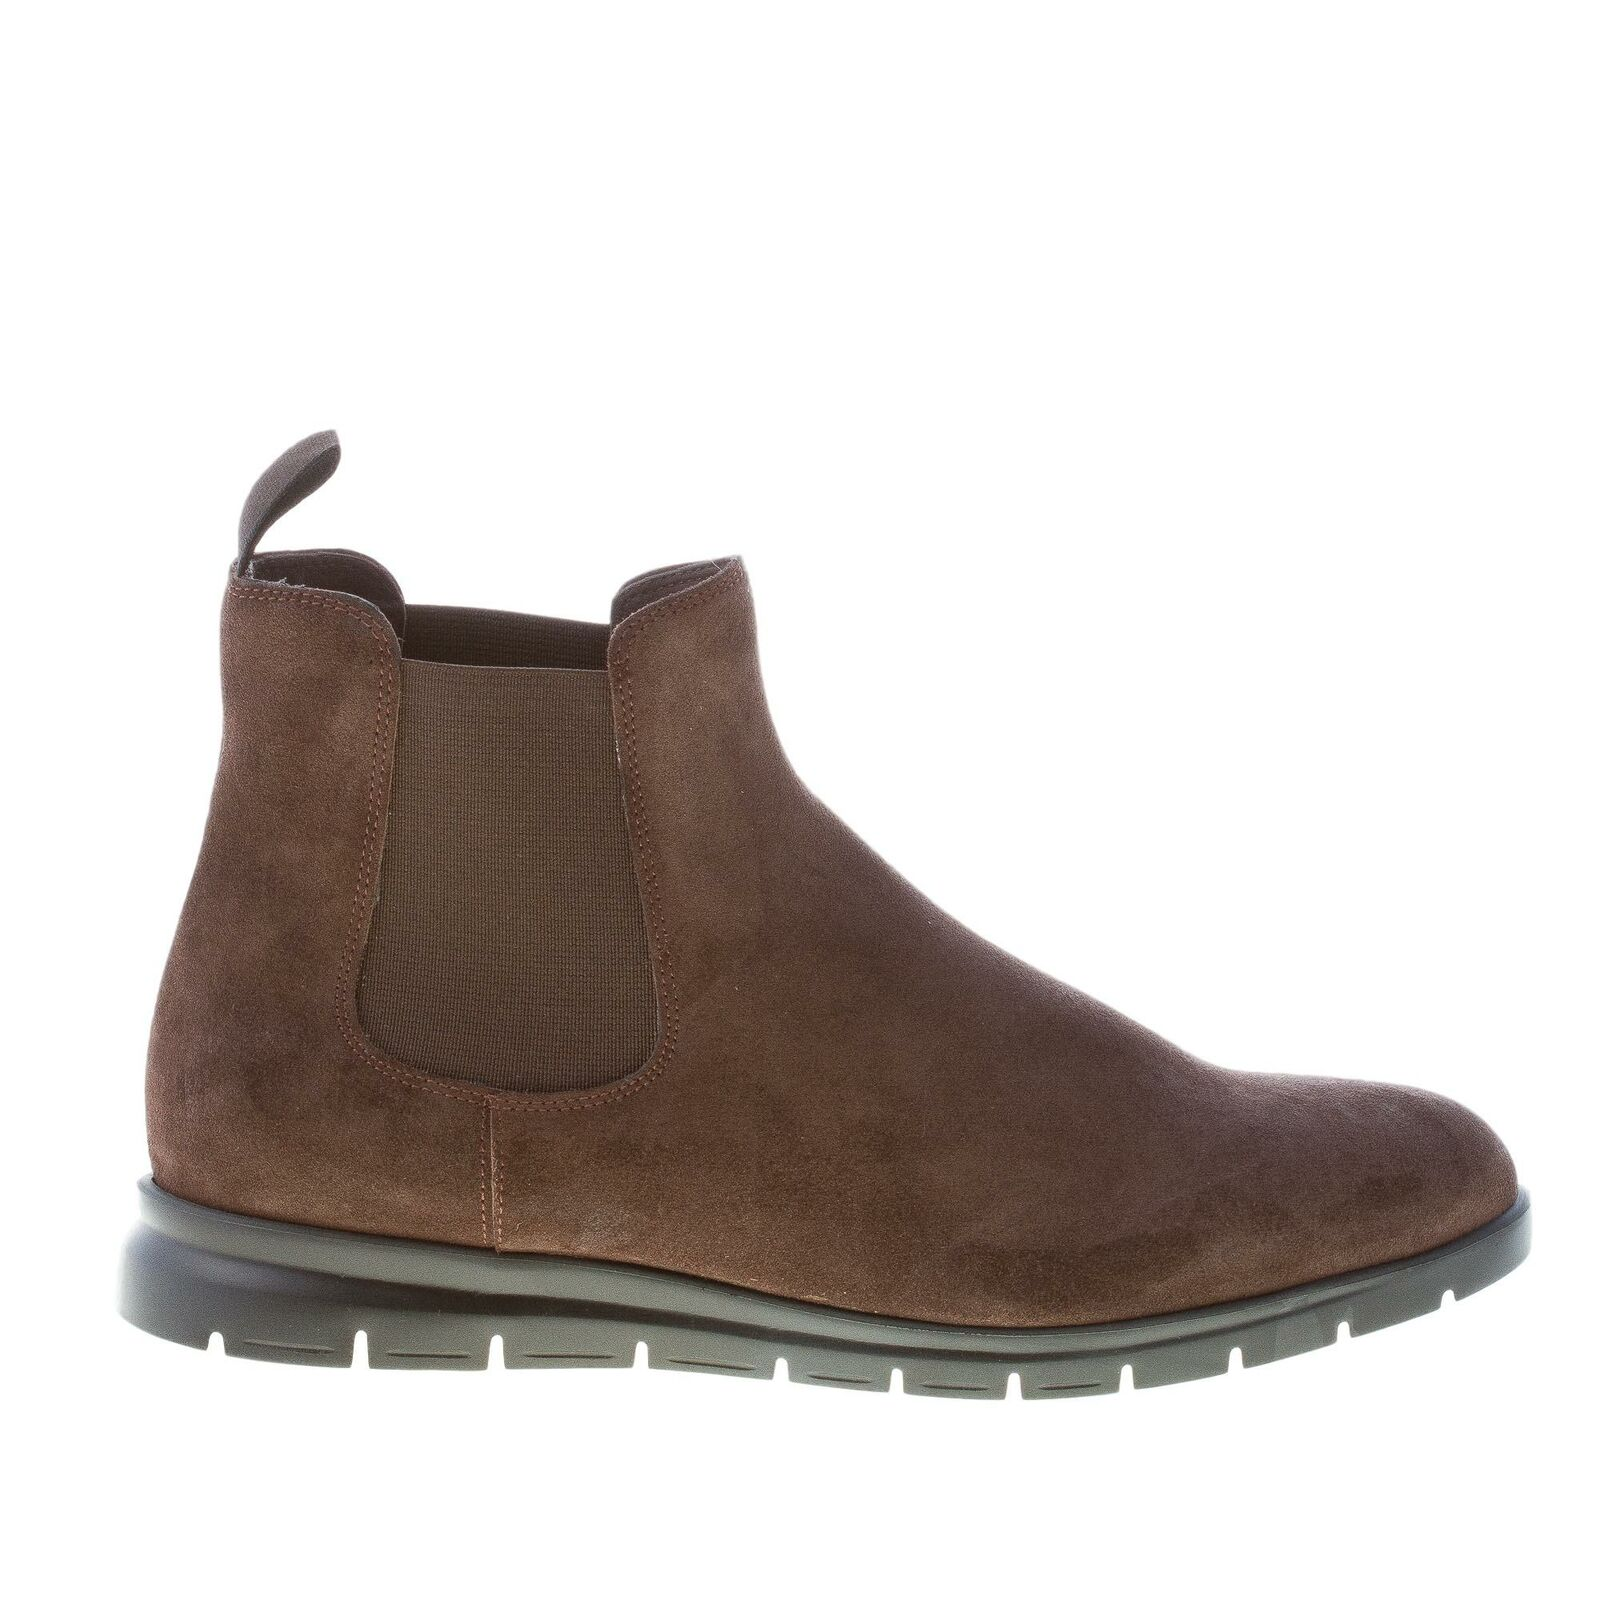 ORTIGNI men shoes Dark brown suede Chelsea boot with a plain toe made in Italy